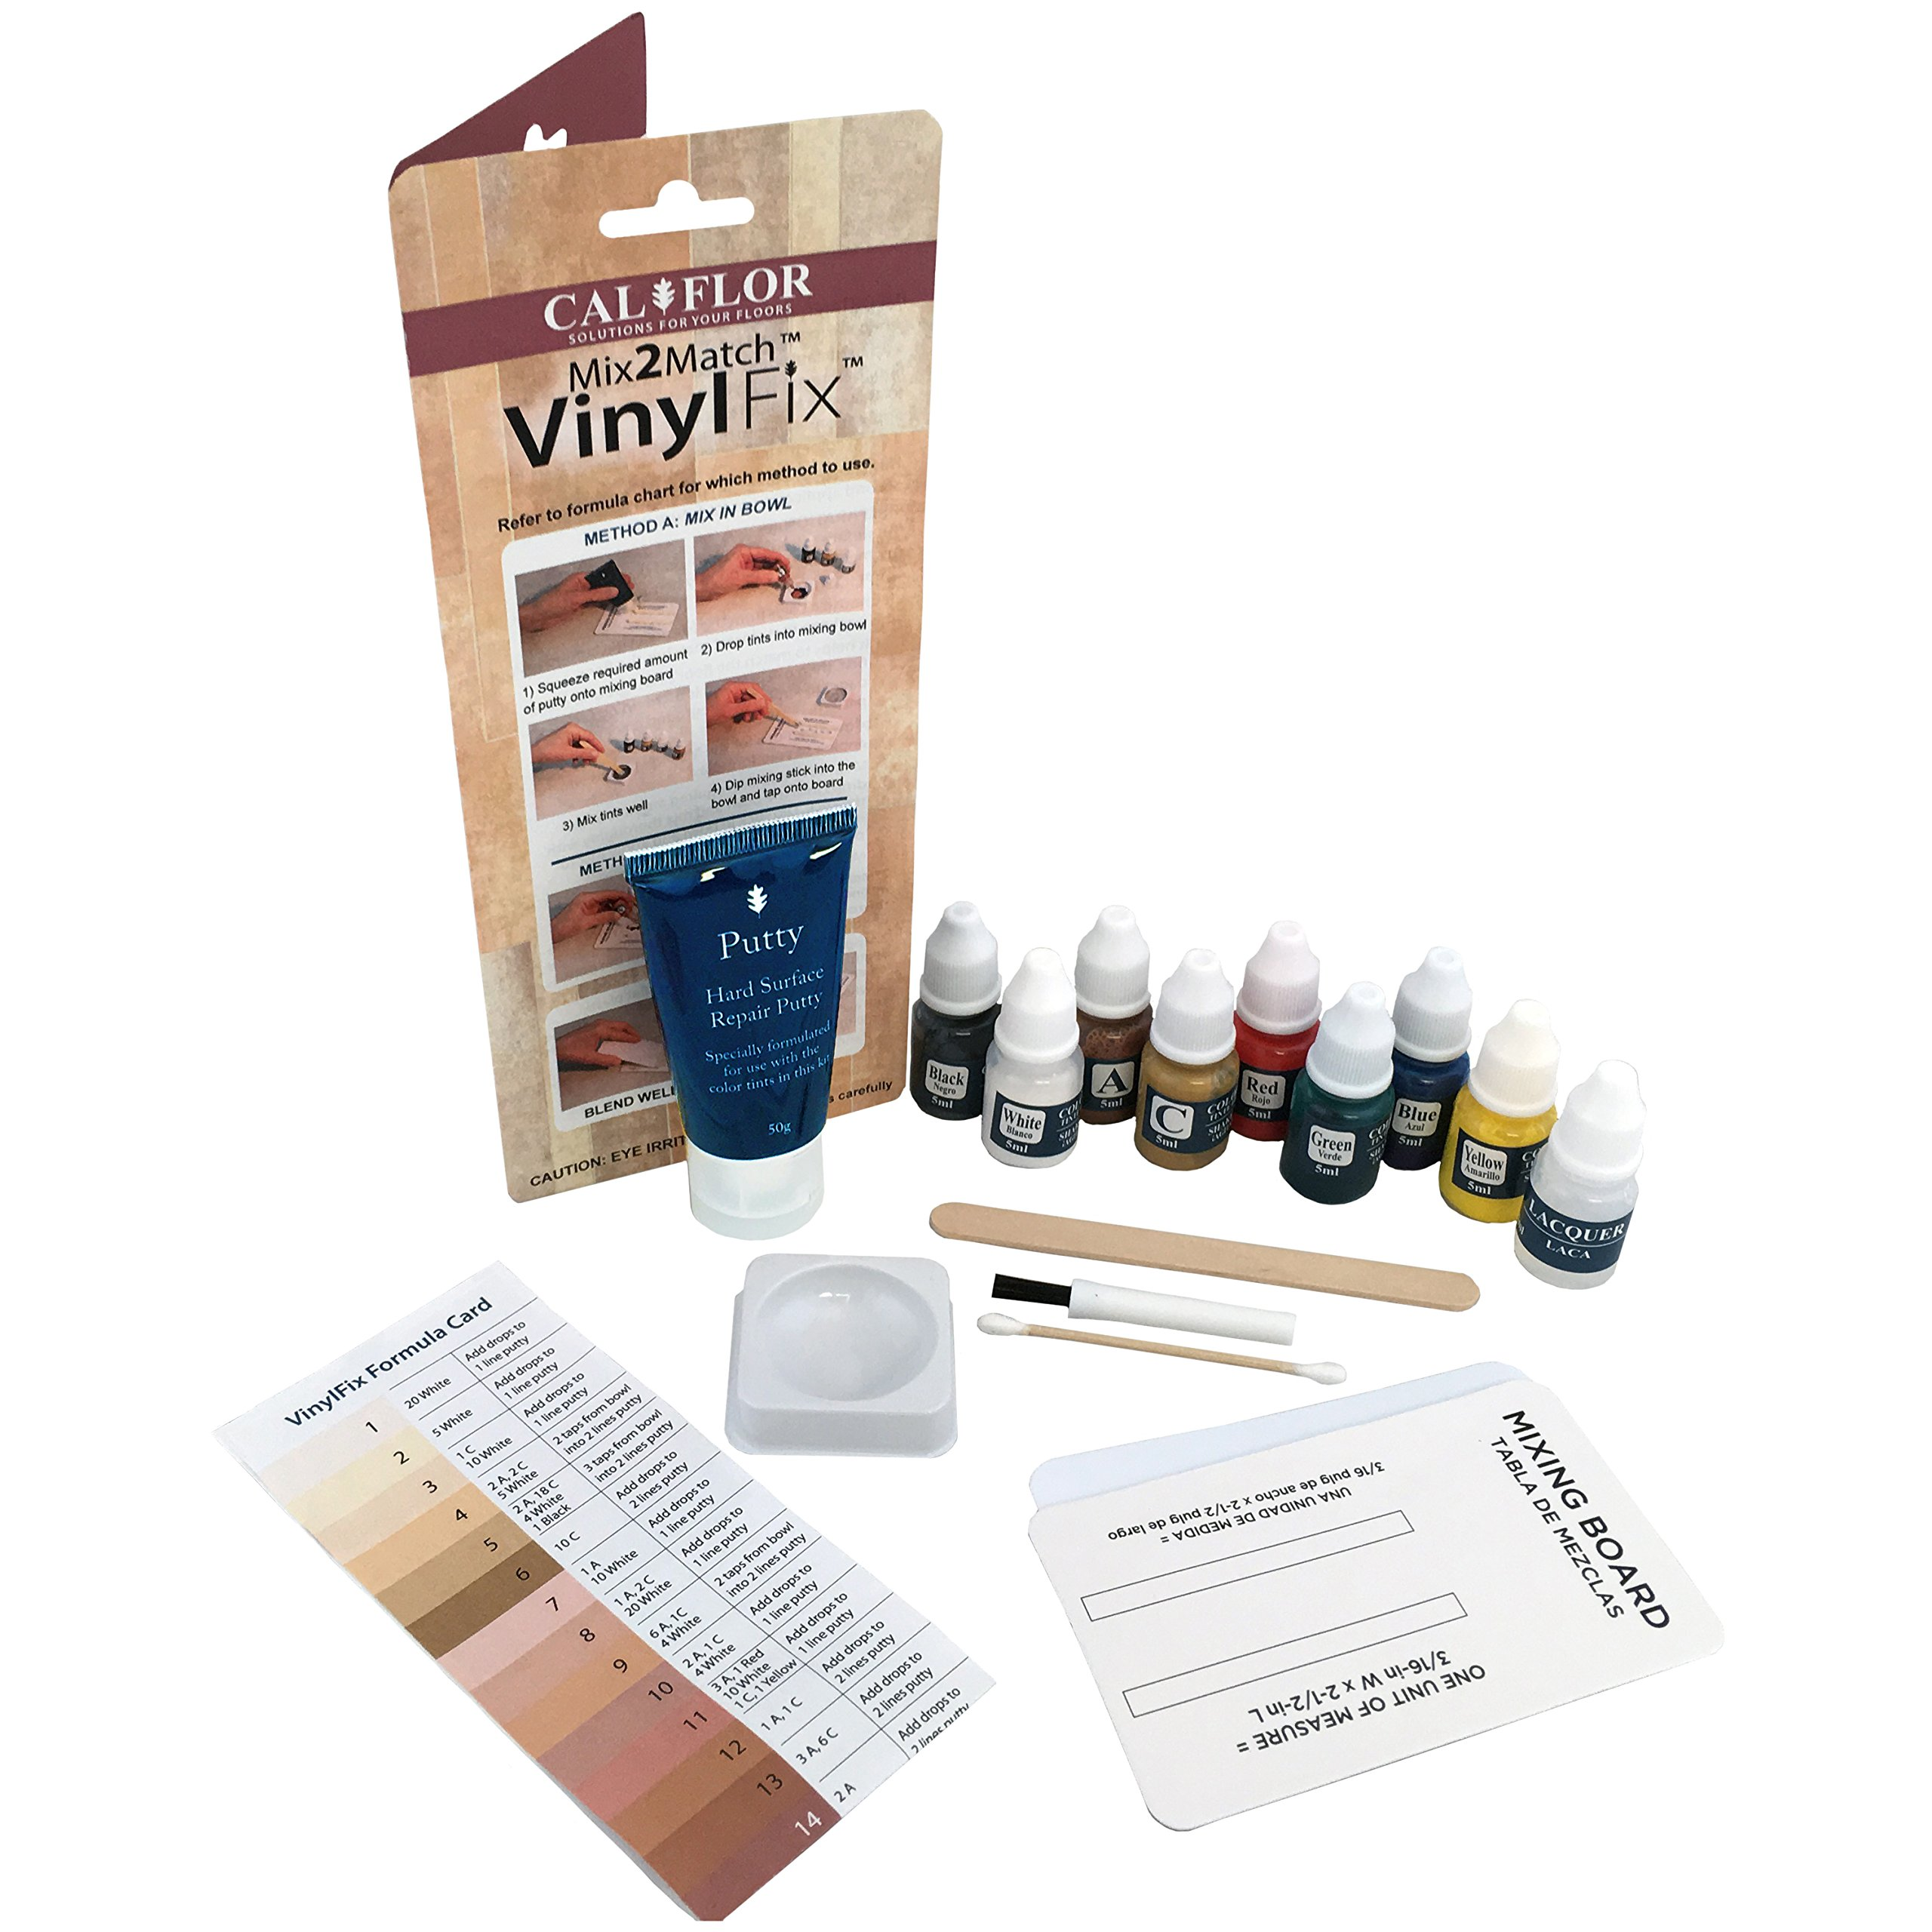 Cal-Flor FL49106CF VinylFix Mix2Match Repair Kit